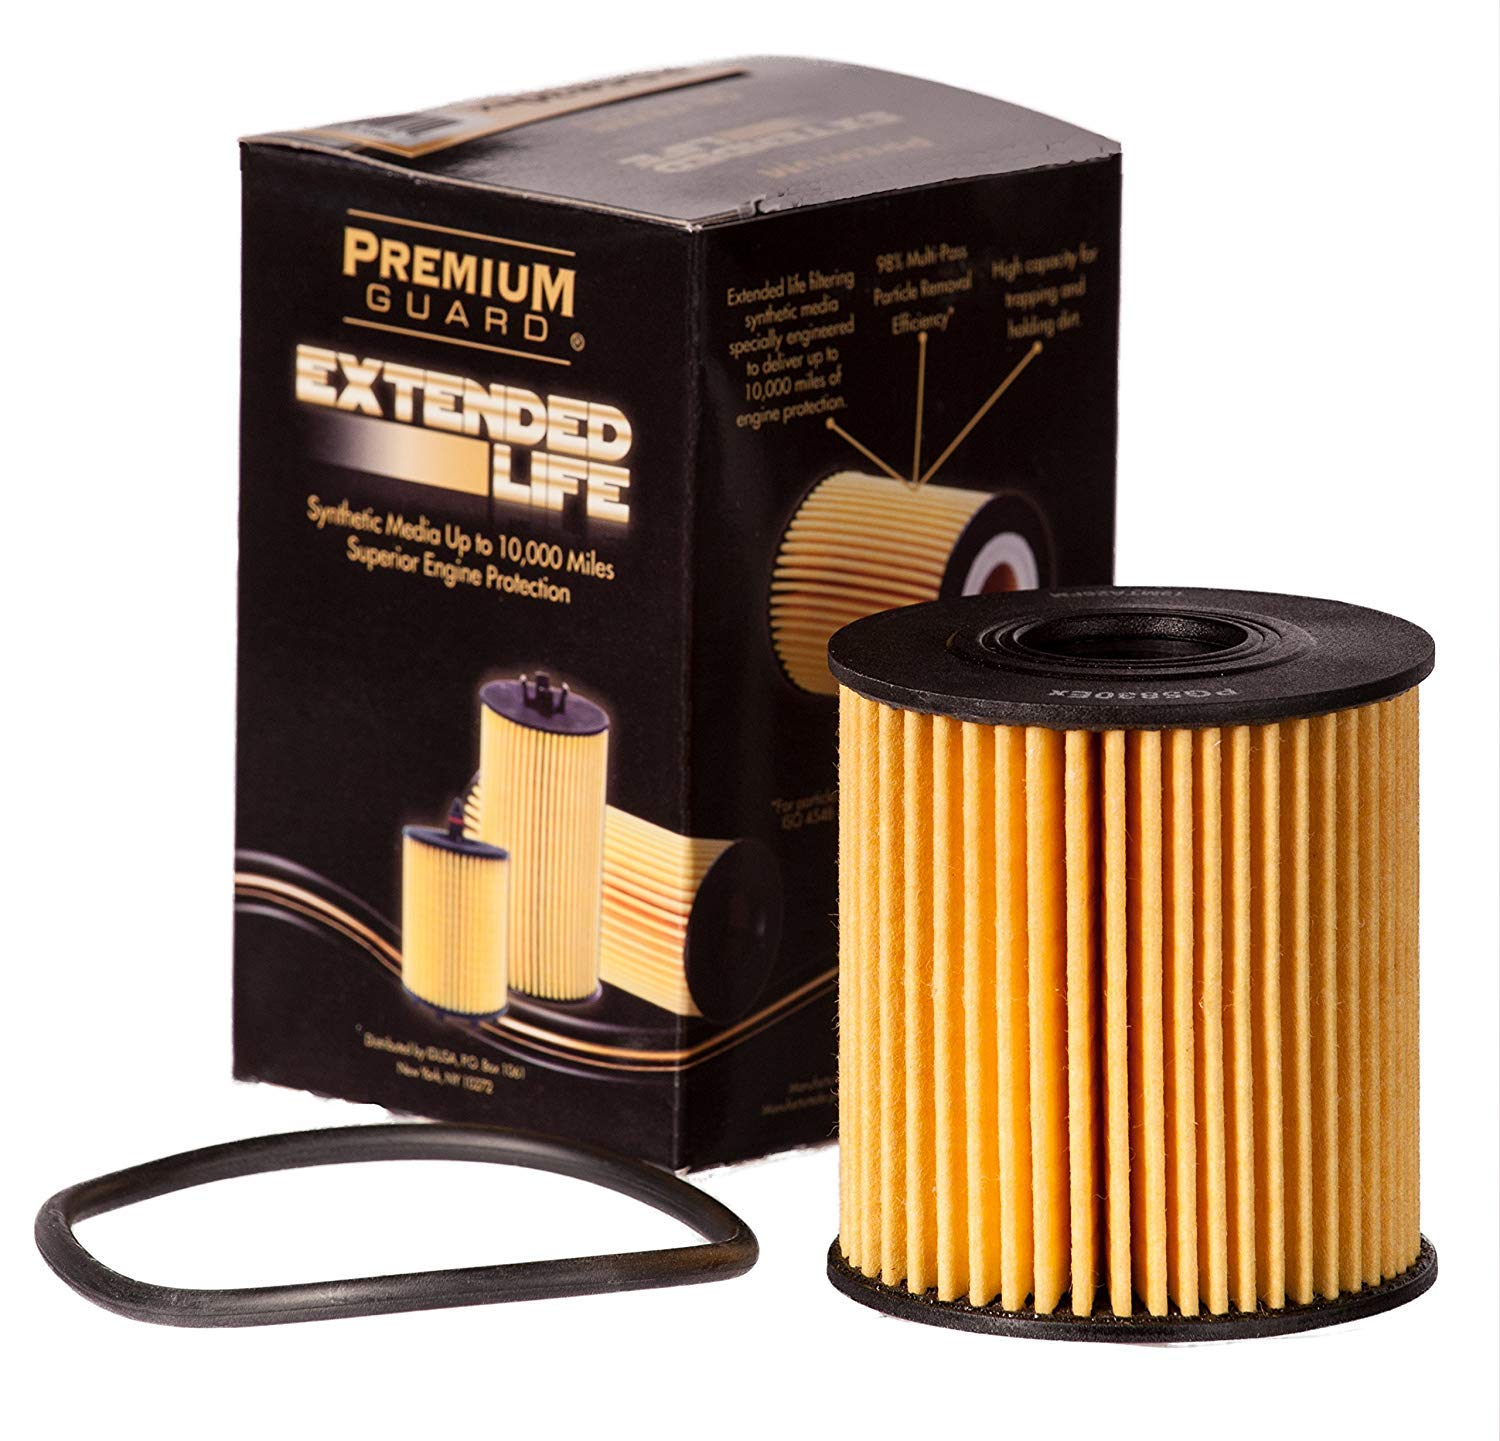 2007-15 Mini Cooper 2011-16 Cooper Countryman 2003-08 307 2008-14 207 PG PG5830EX EXtended Performance Oil Filter Fits 2007-14 Ford Transit 2013-16 Cooper Paceman 2003-09 Peugeot 206